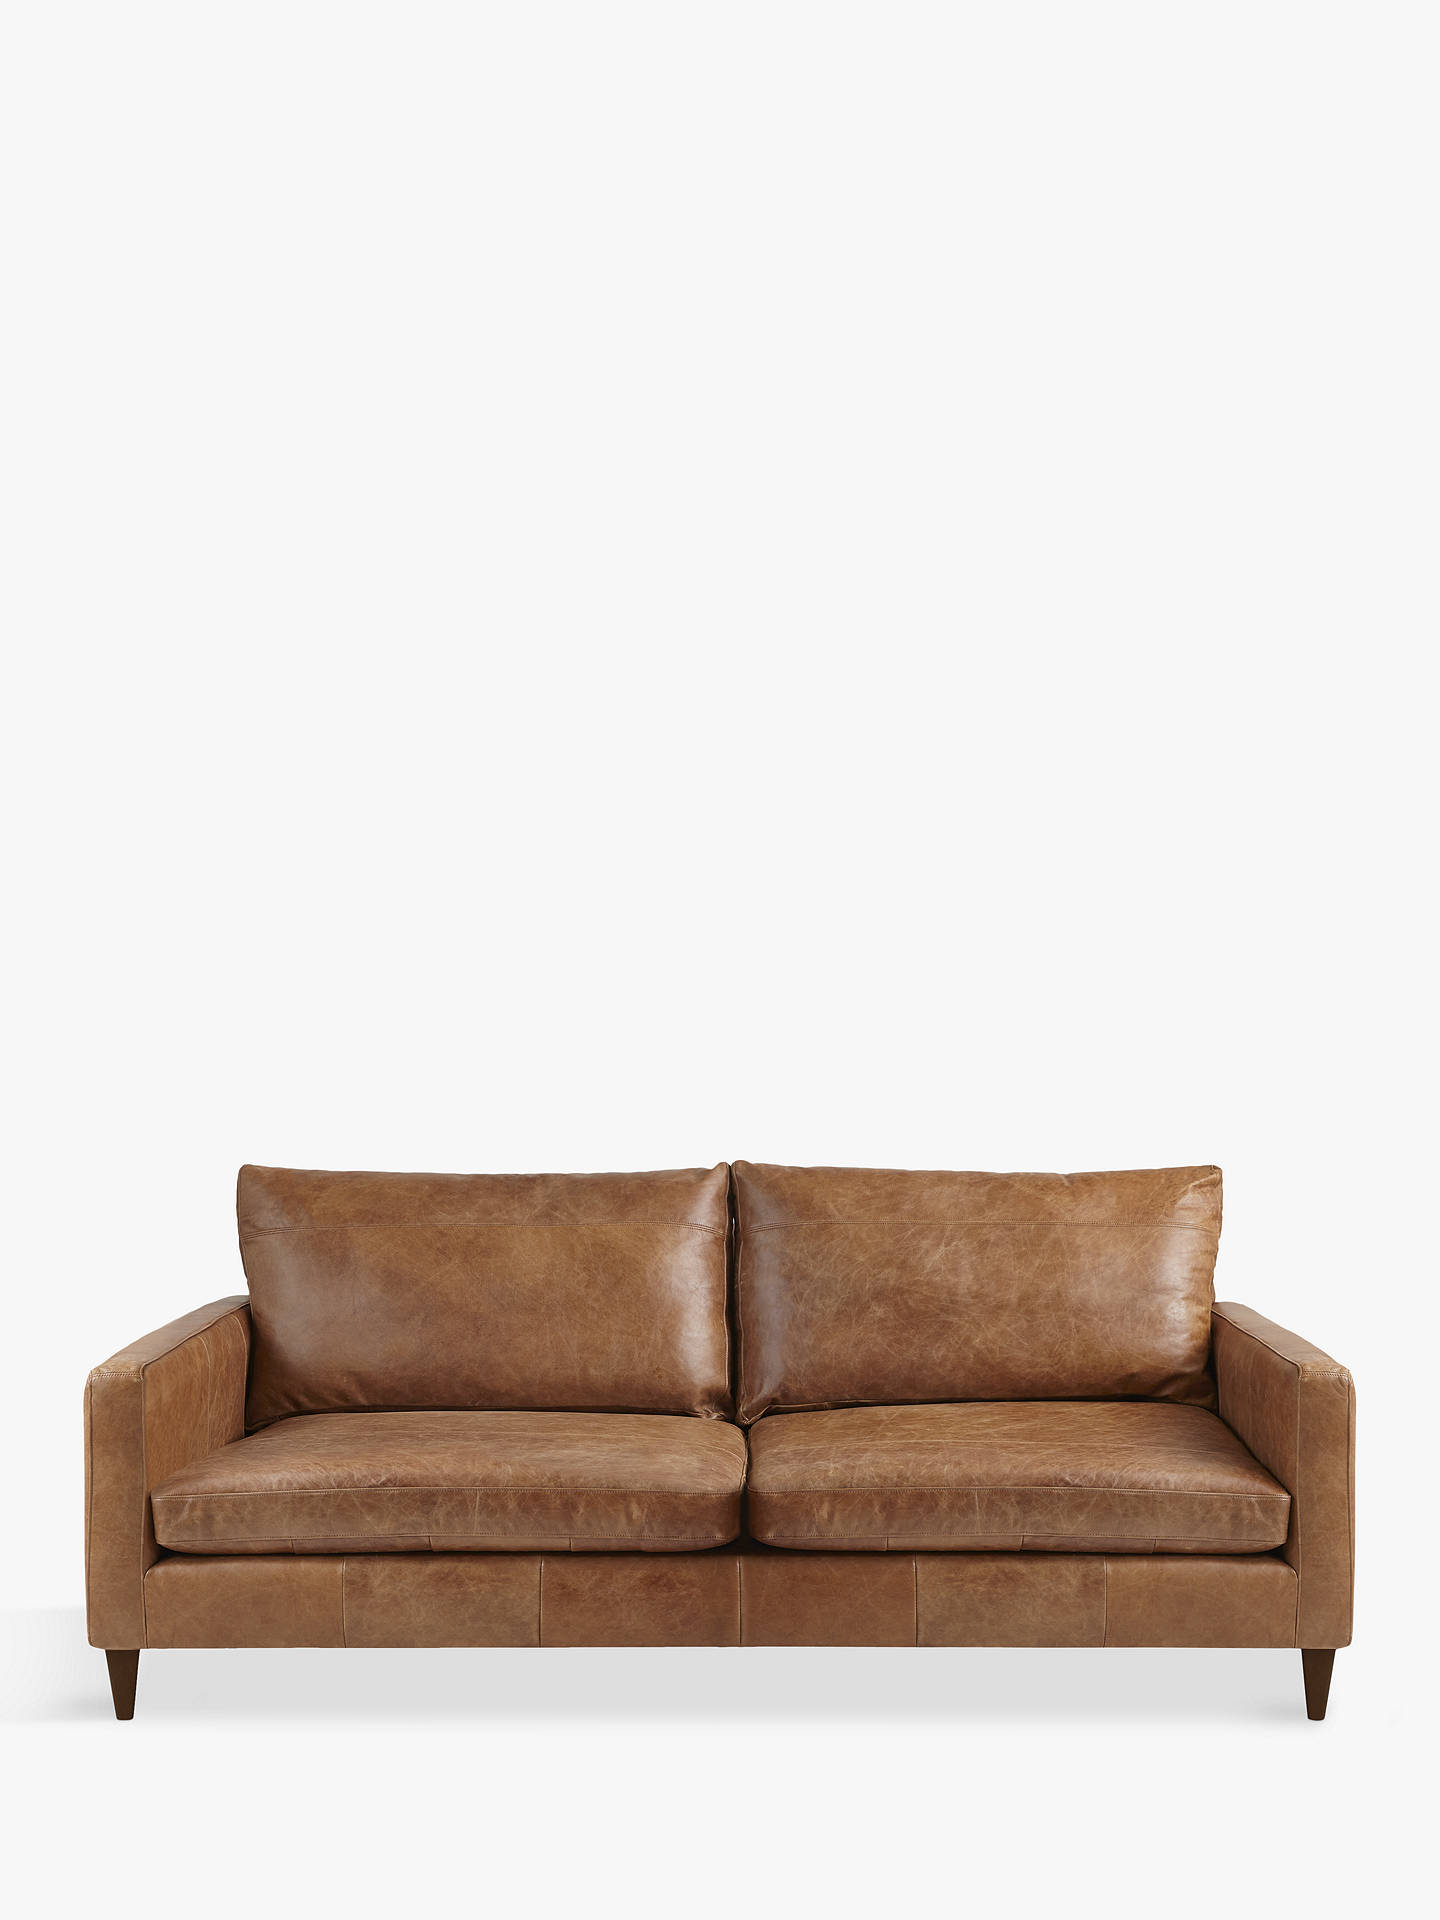 John Lewis Partners Bailey Large 3 Seater Leather Sofa Er Cuccino Online At Johnlewis